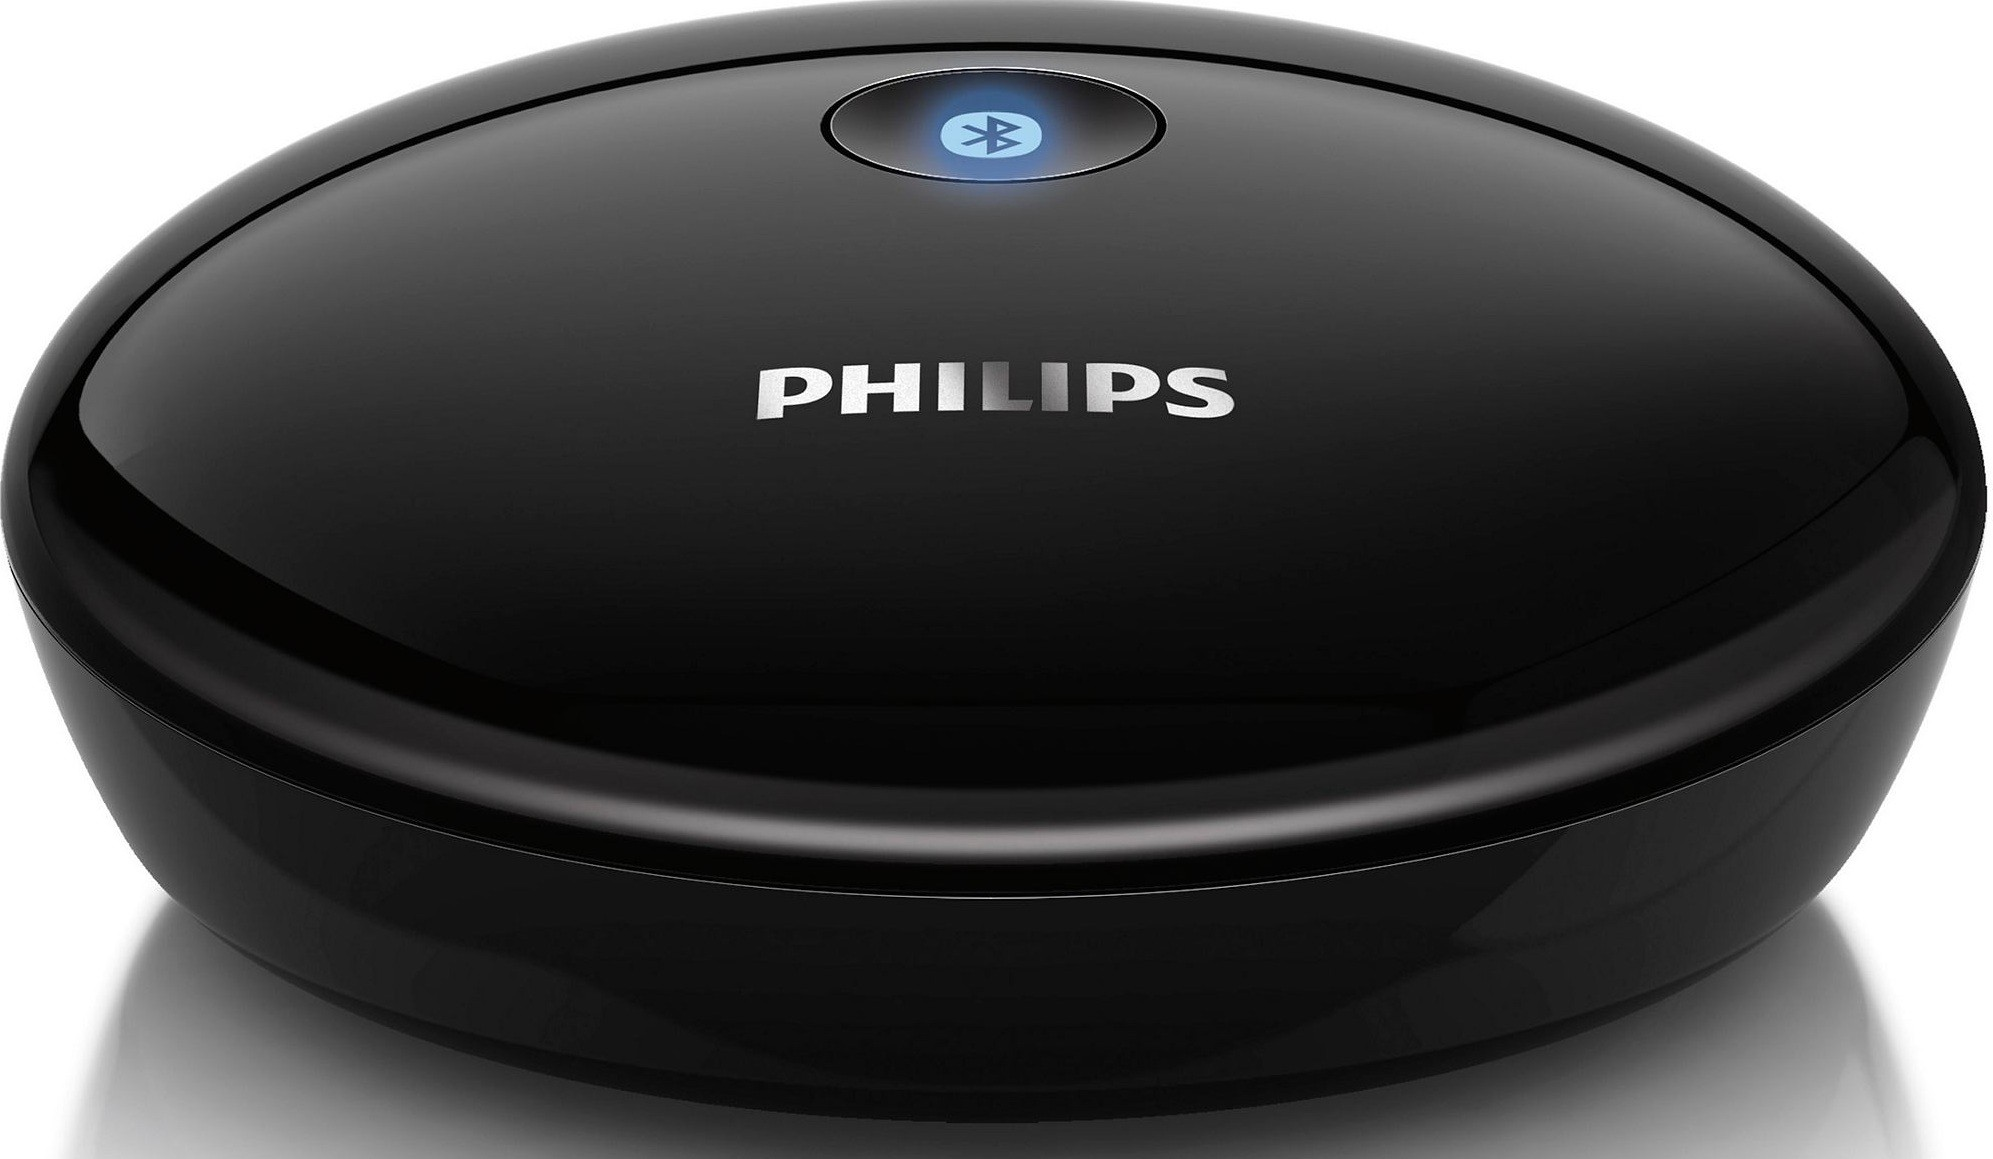 PHILIPS - AEA 2000/12